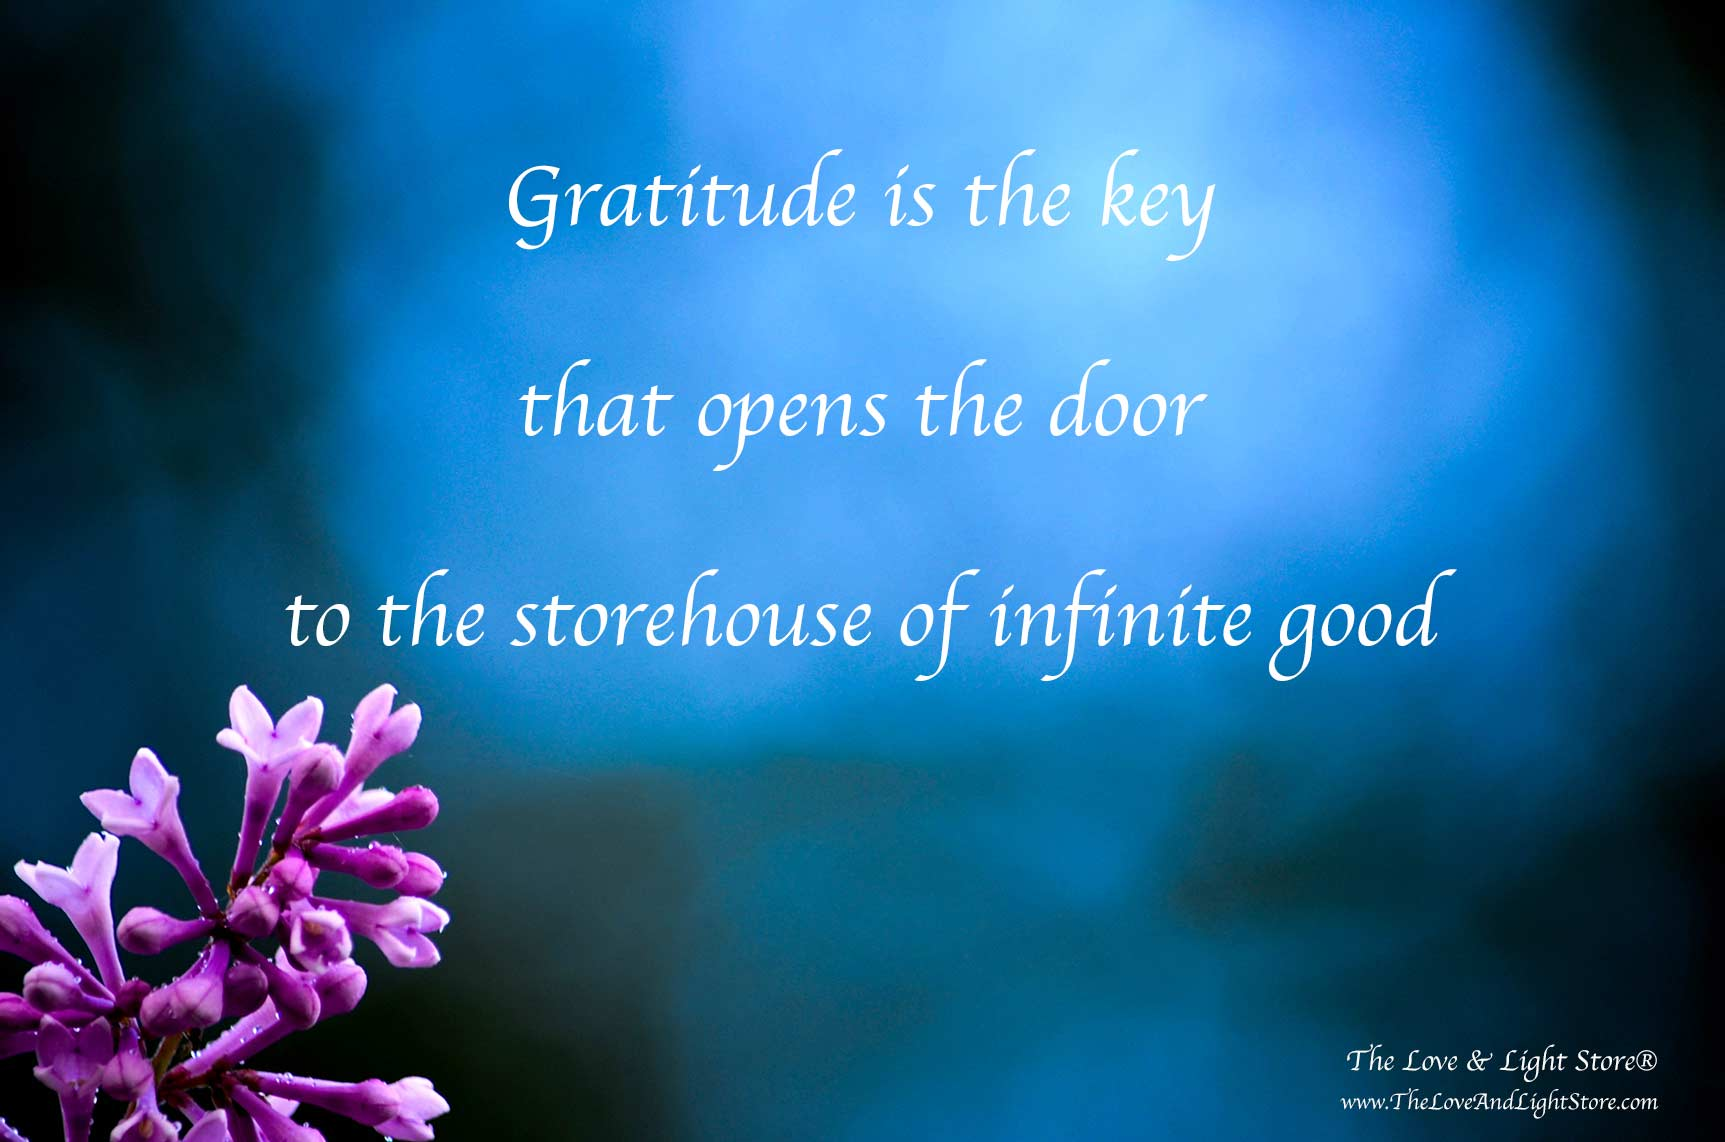 Gratitude is the key that opens the door to the storehouse of infinite good